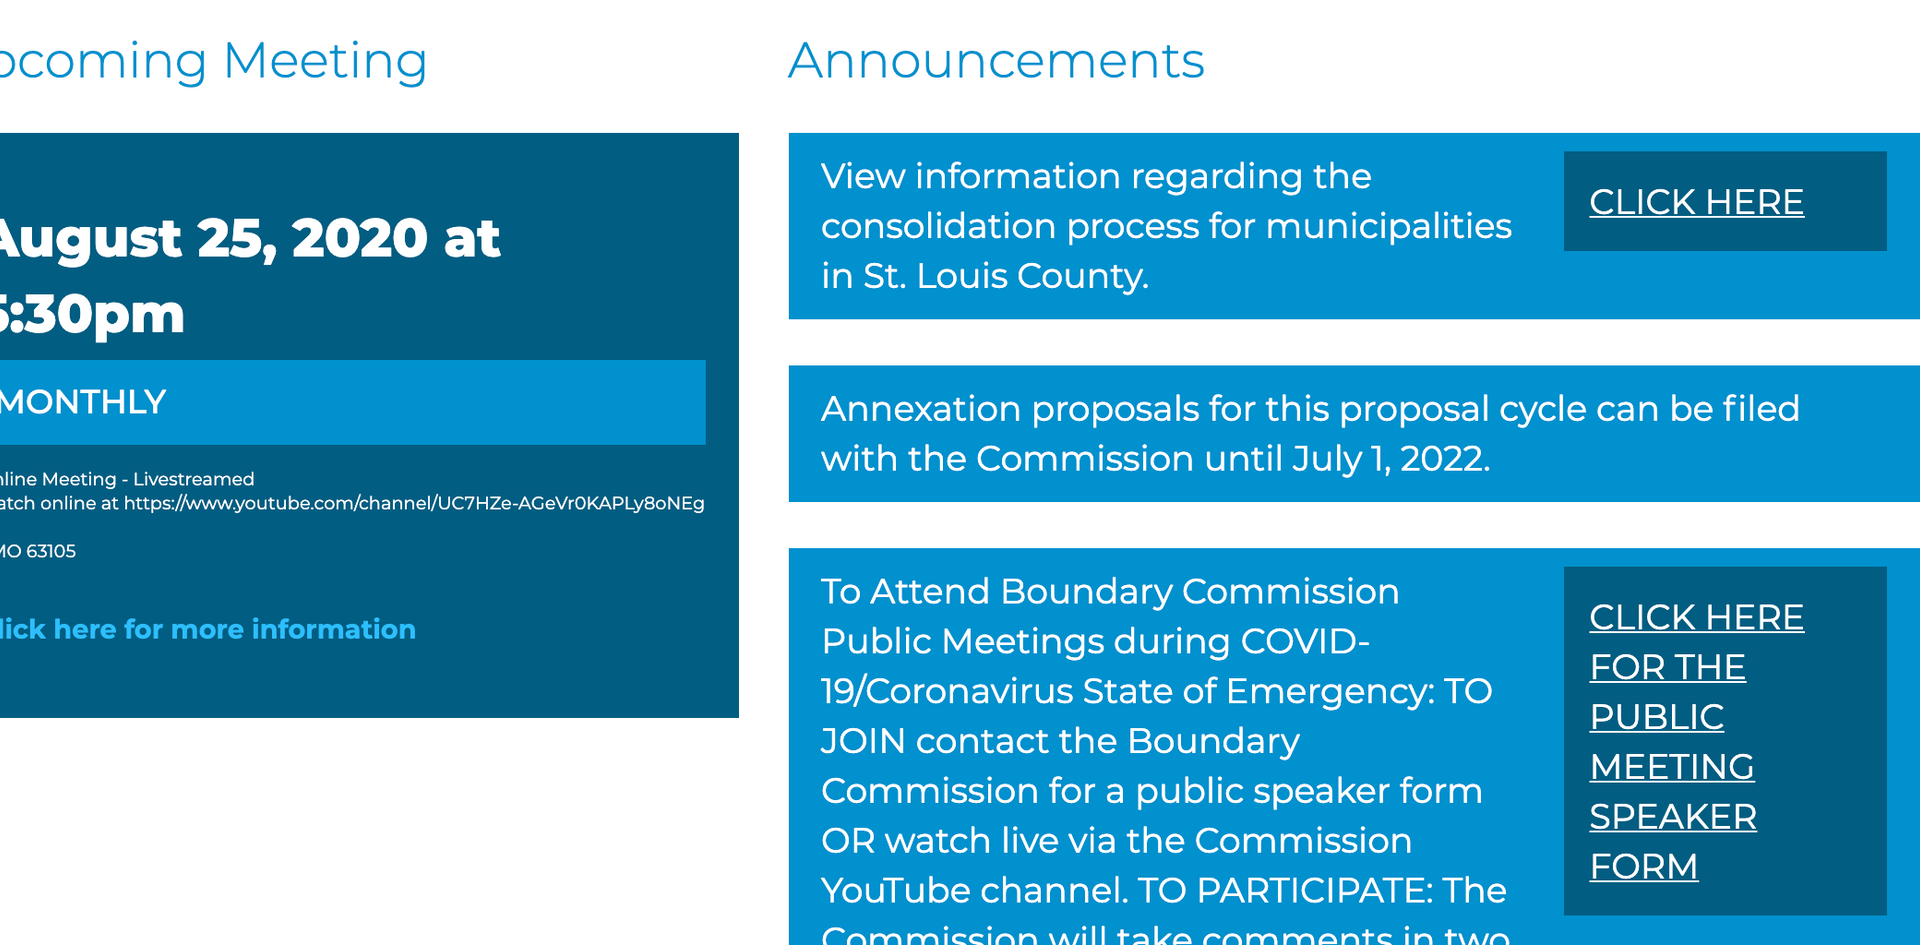 St. Louis Boundary Commission Upcoming Meeting Page